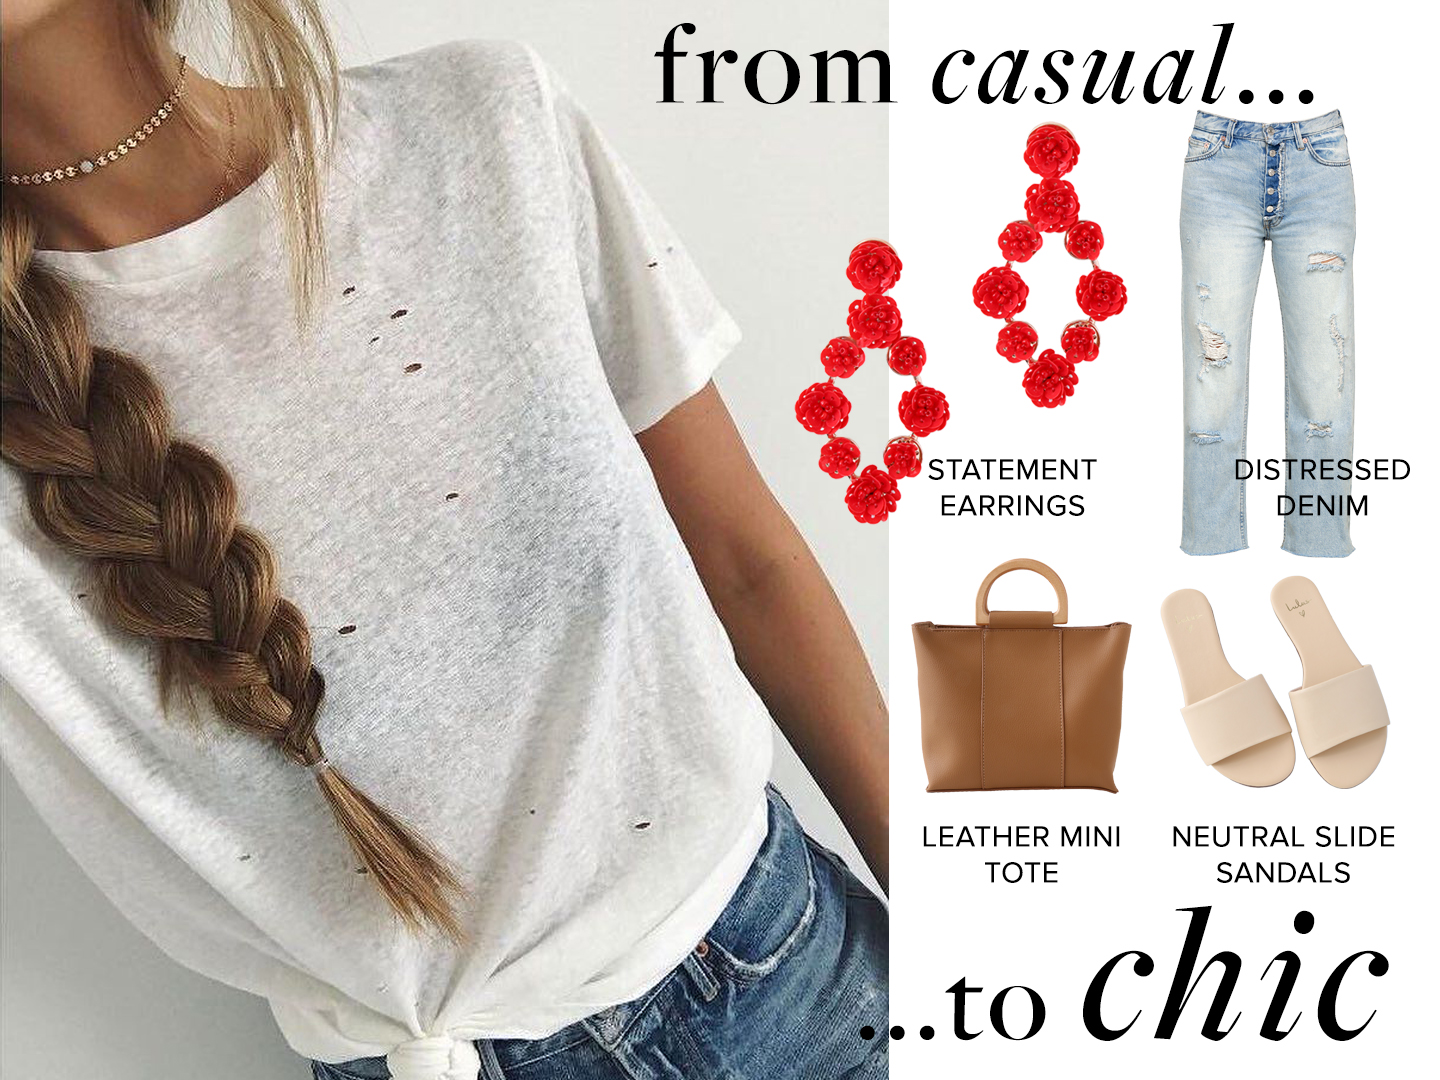 casual outfit with chic statement earrings